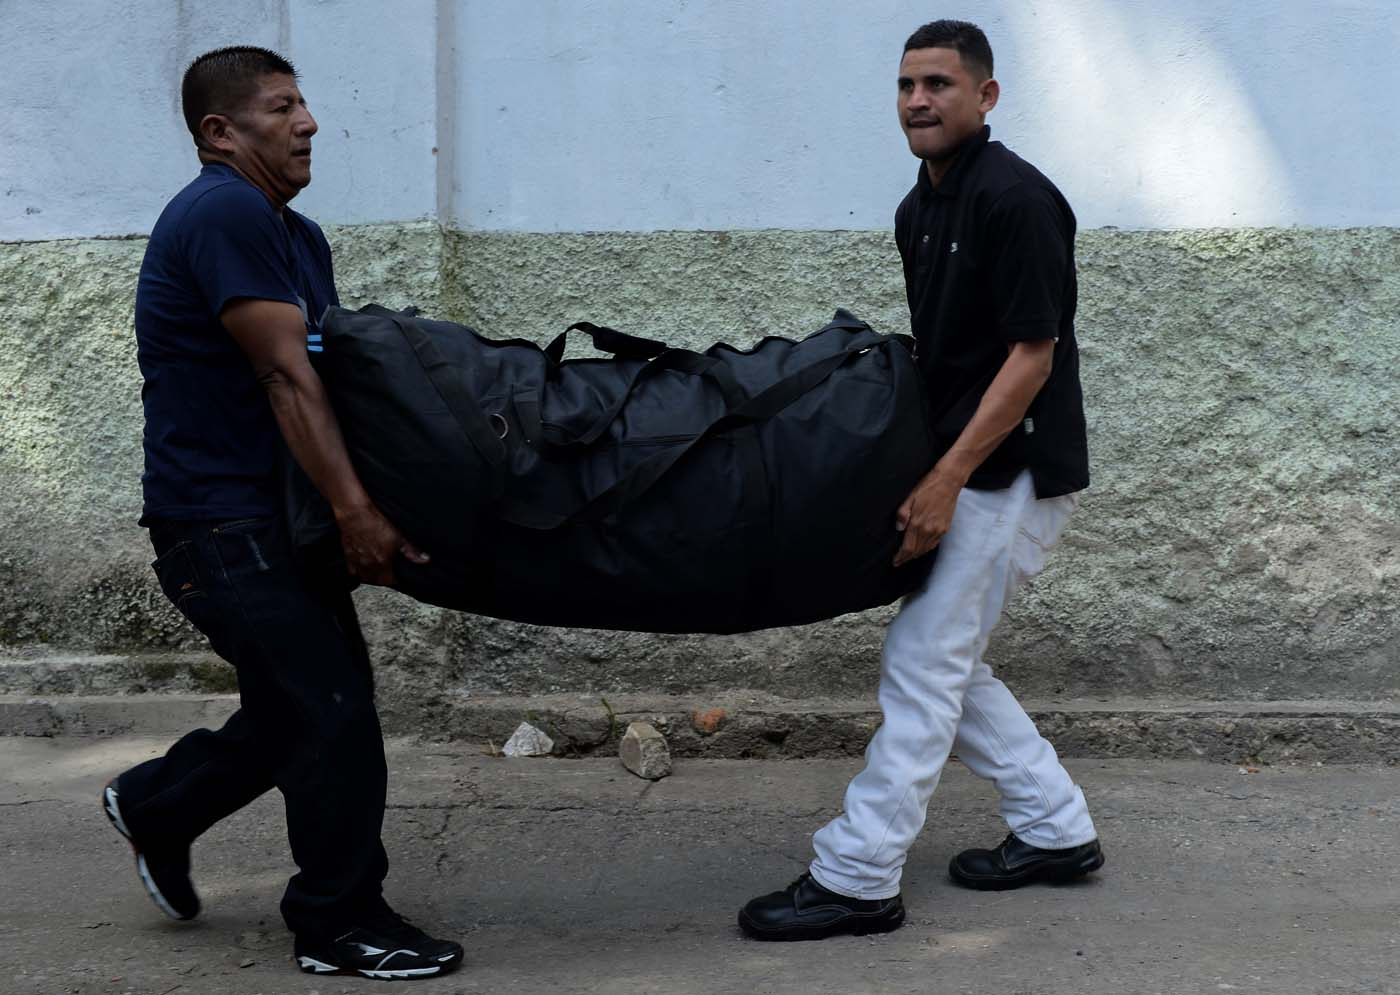 Two men carry a bag as they arrive at a bus station in Caracas on October 11, 2017 as scores of disappointed Venezuelans who see no end to the crisis choose to leave the country. Venezuela, which holds regional elections on October 15, is a country at the top of the Latin American continent that is in deep economic and political crisis. / AFP PHOTO / Federico PARRA